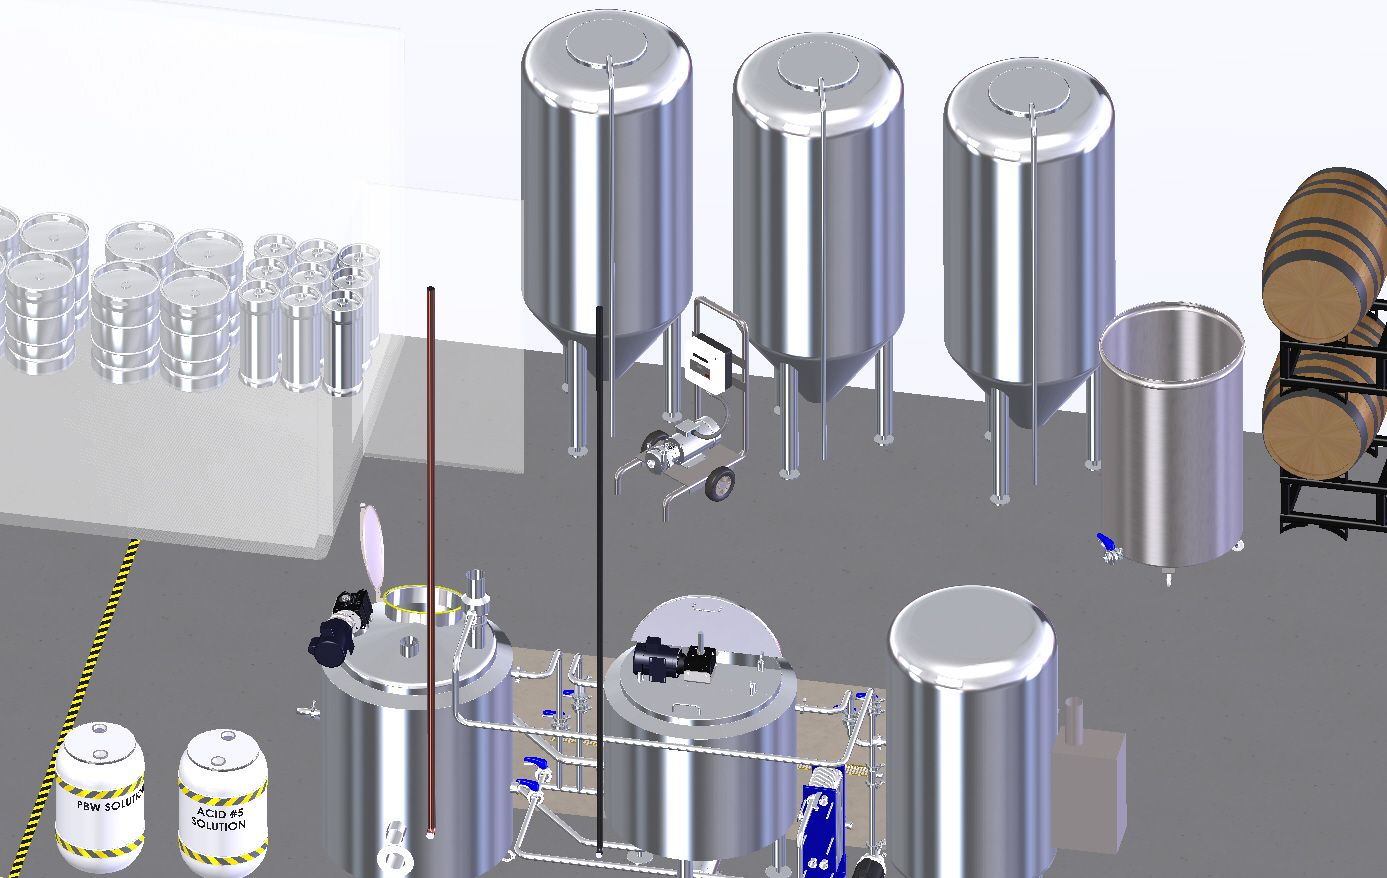 architectural plans for a micro distillery Google Search